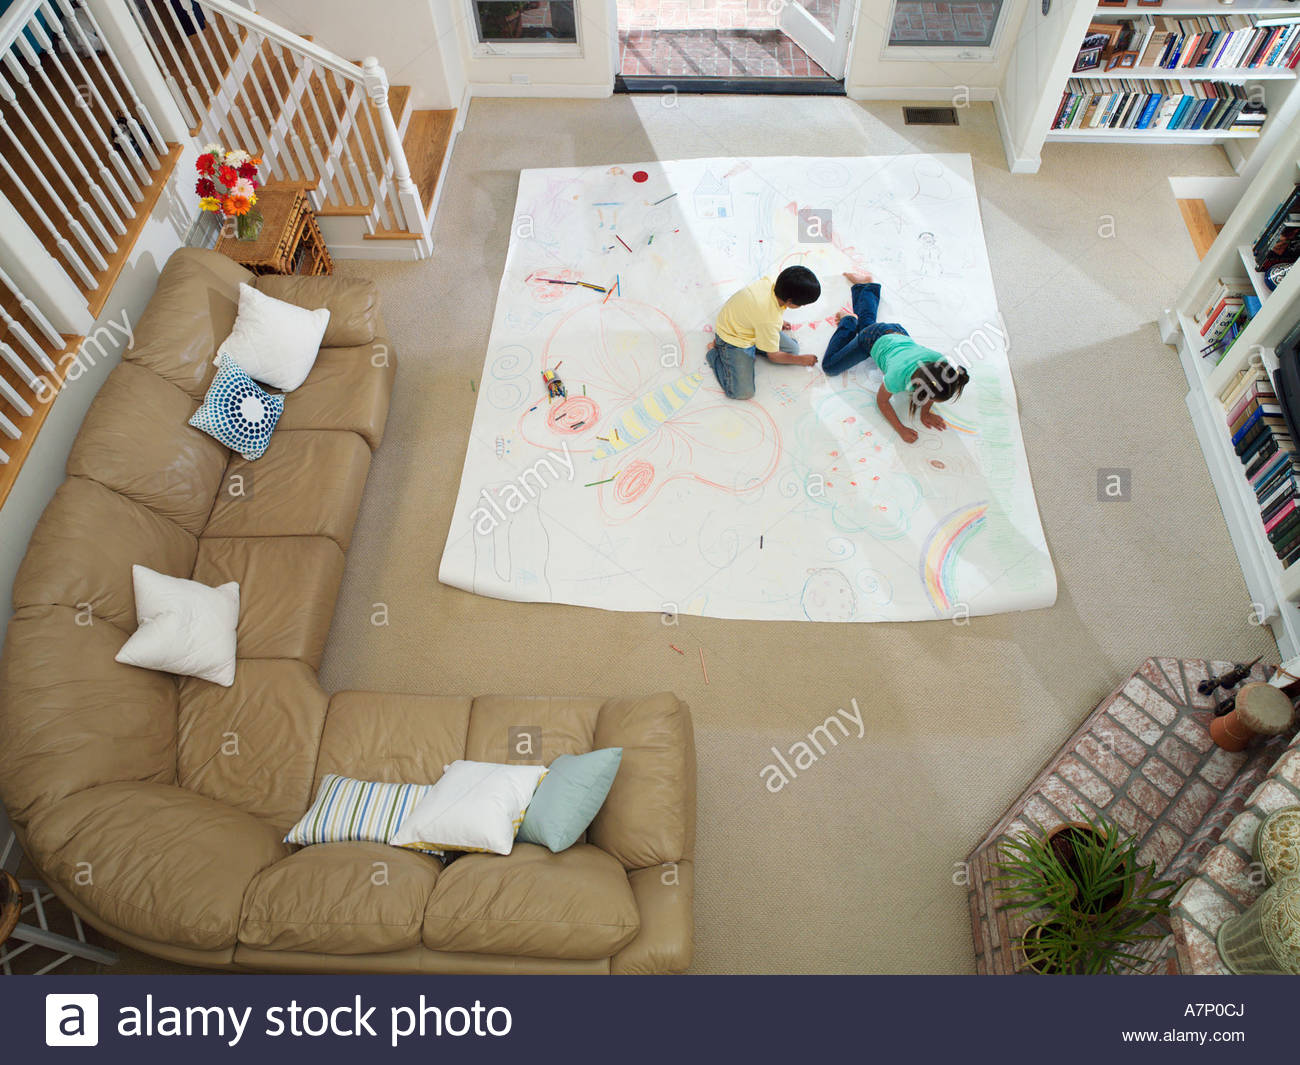 Boy and girl 7 10 drawing on large piece of paper laid out on living room floor overhead view - Stock Image